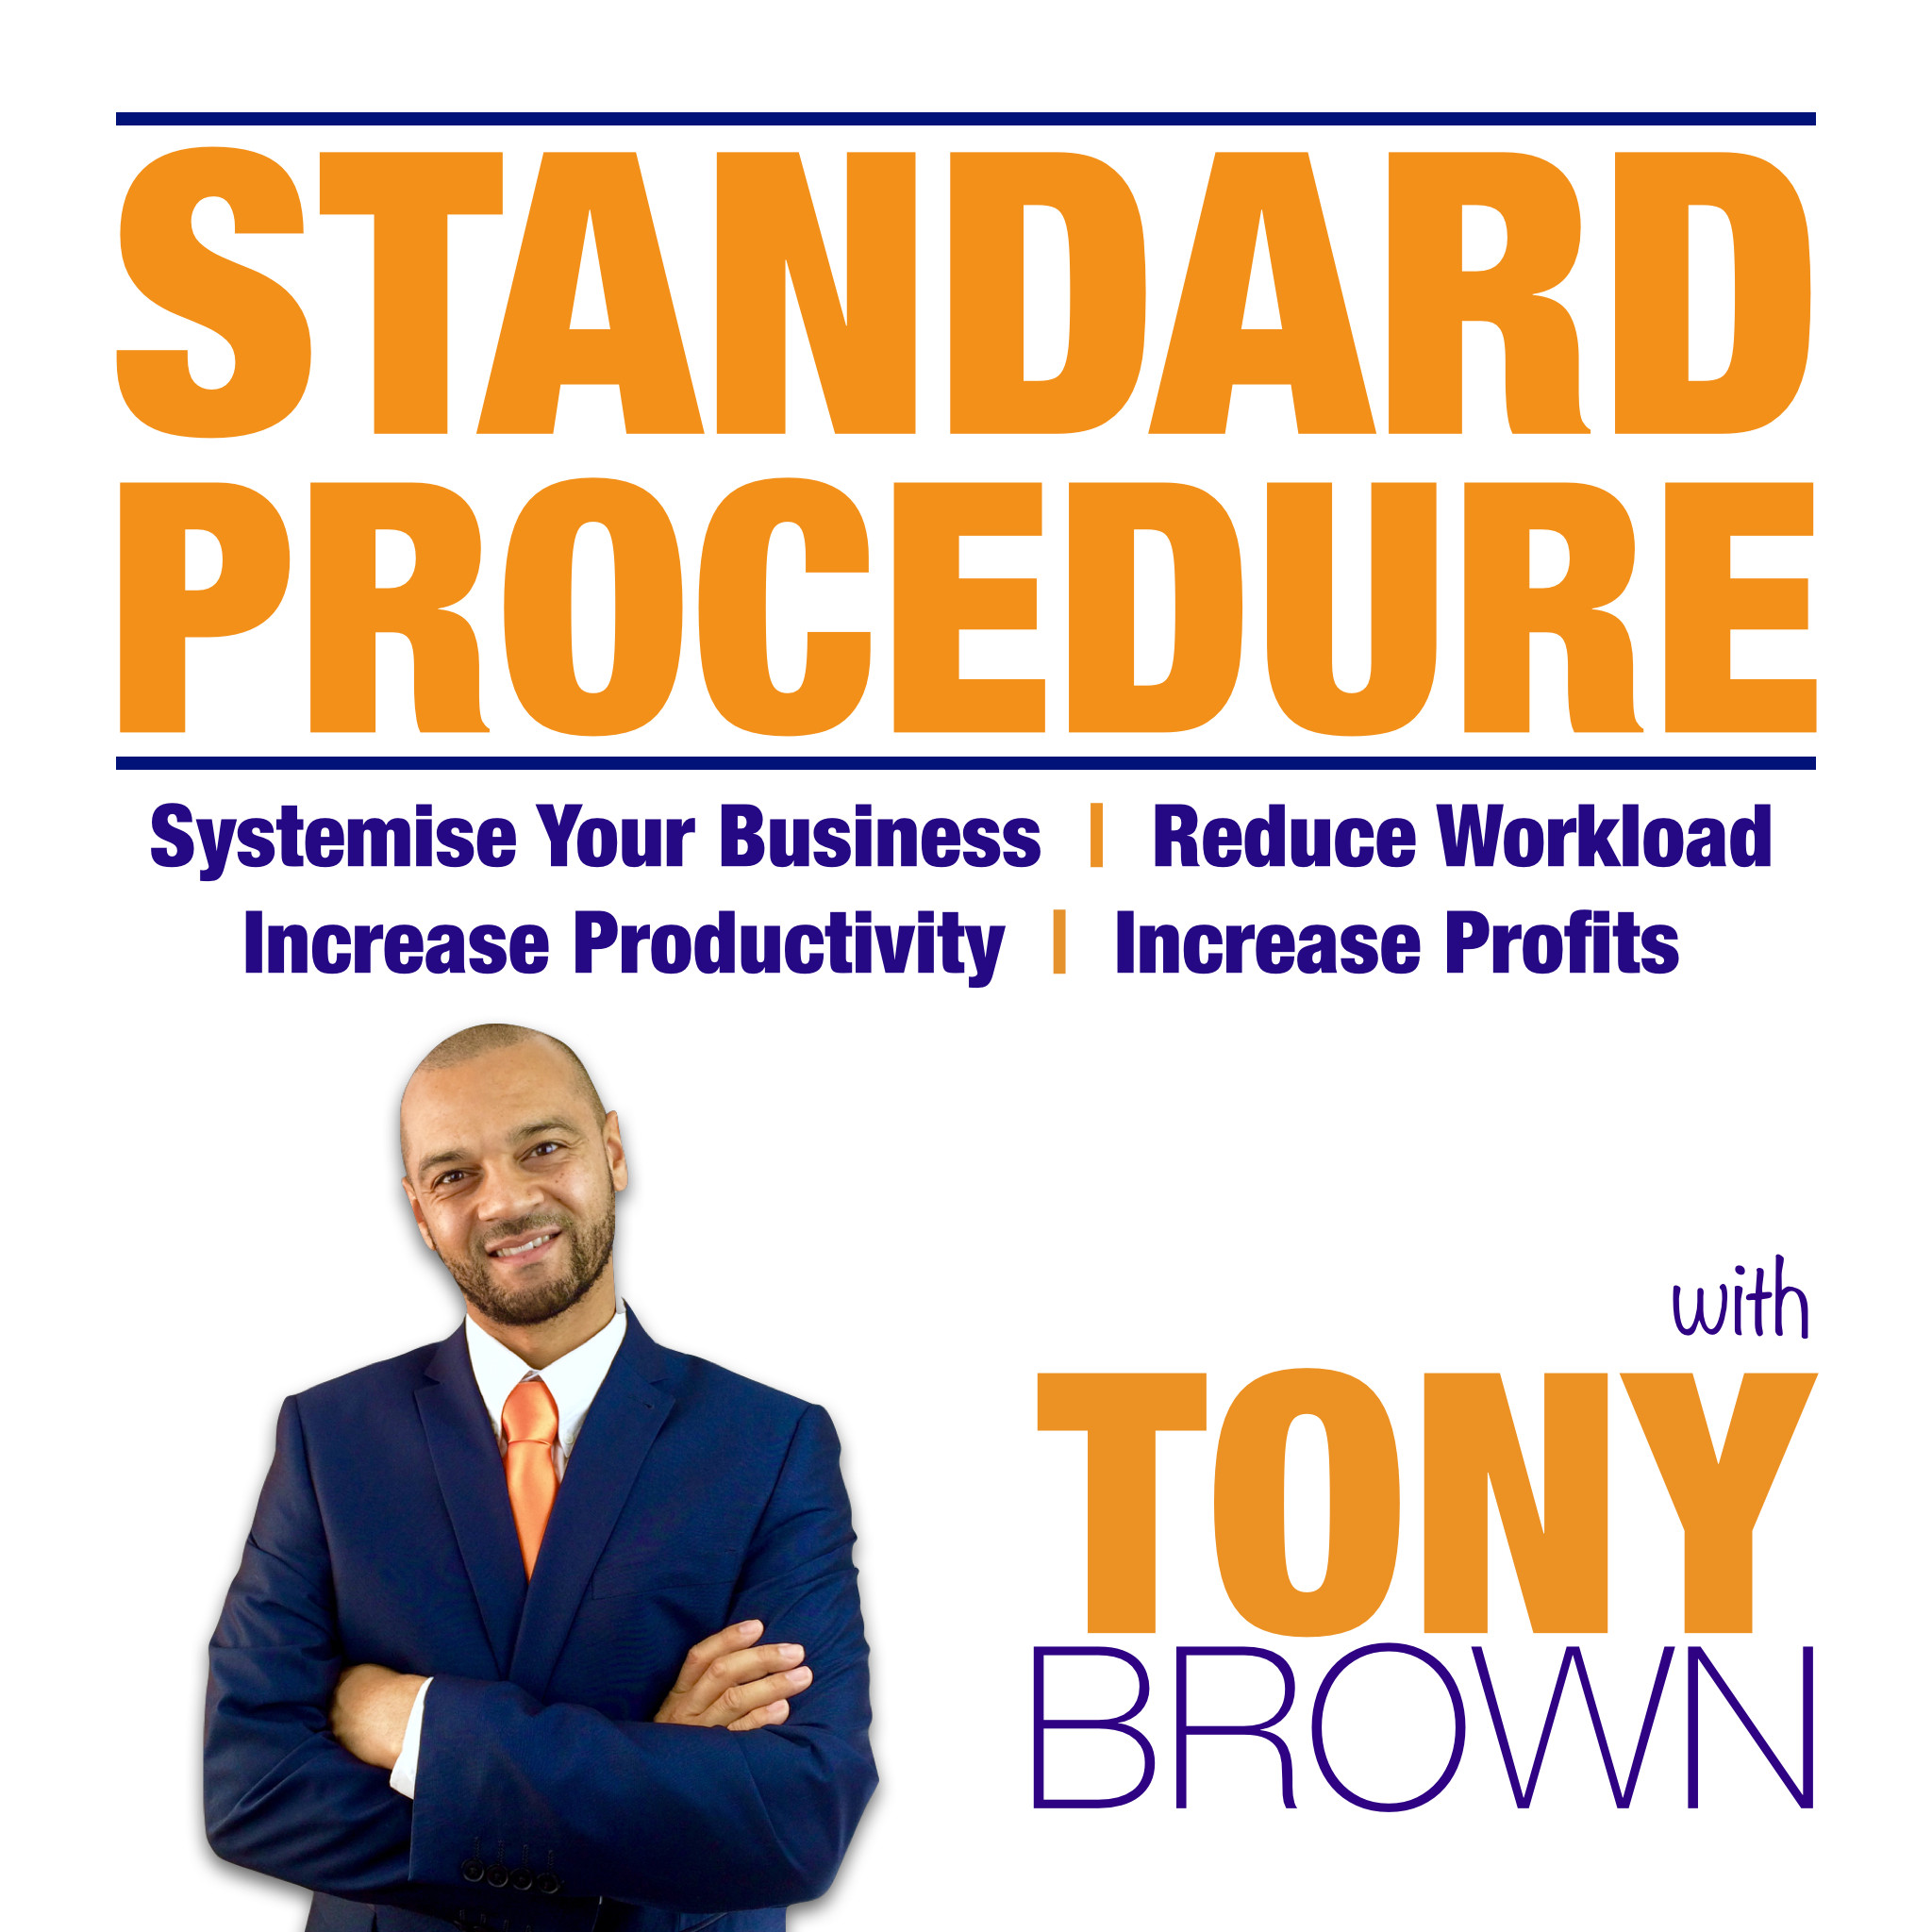 Standard Procedure: Systemise Your Business | Reduce Workload | Increase Productivity  | Increase Profits | Tony L Brown